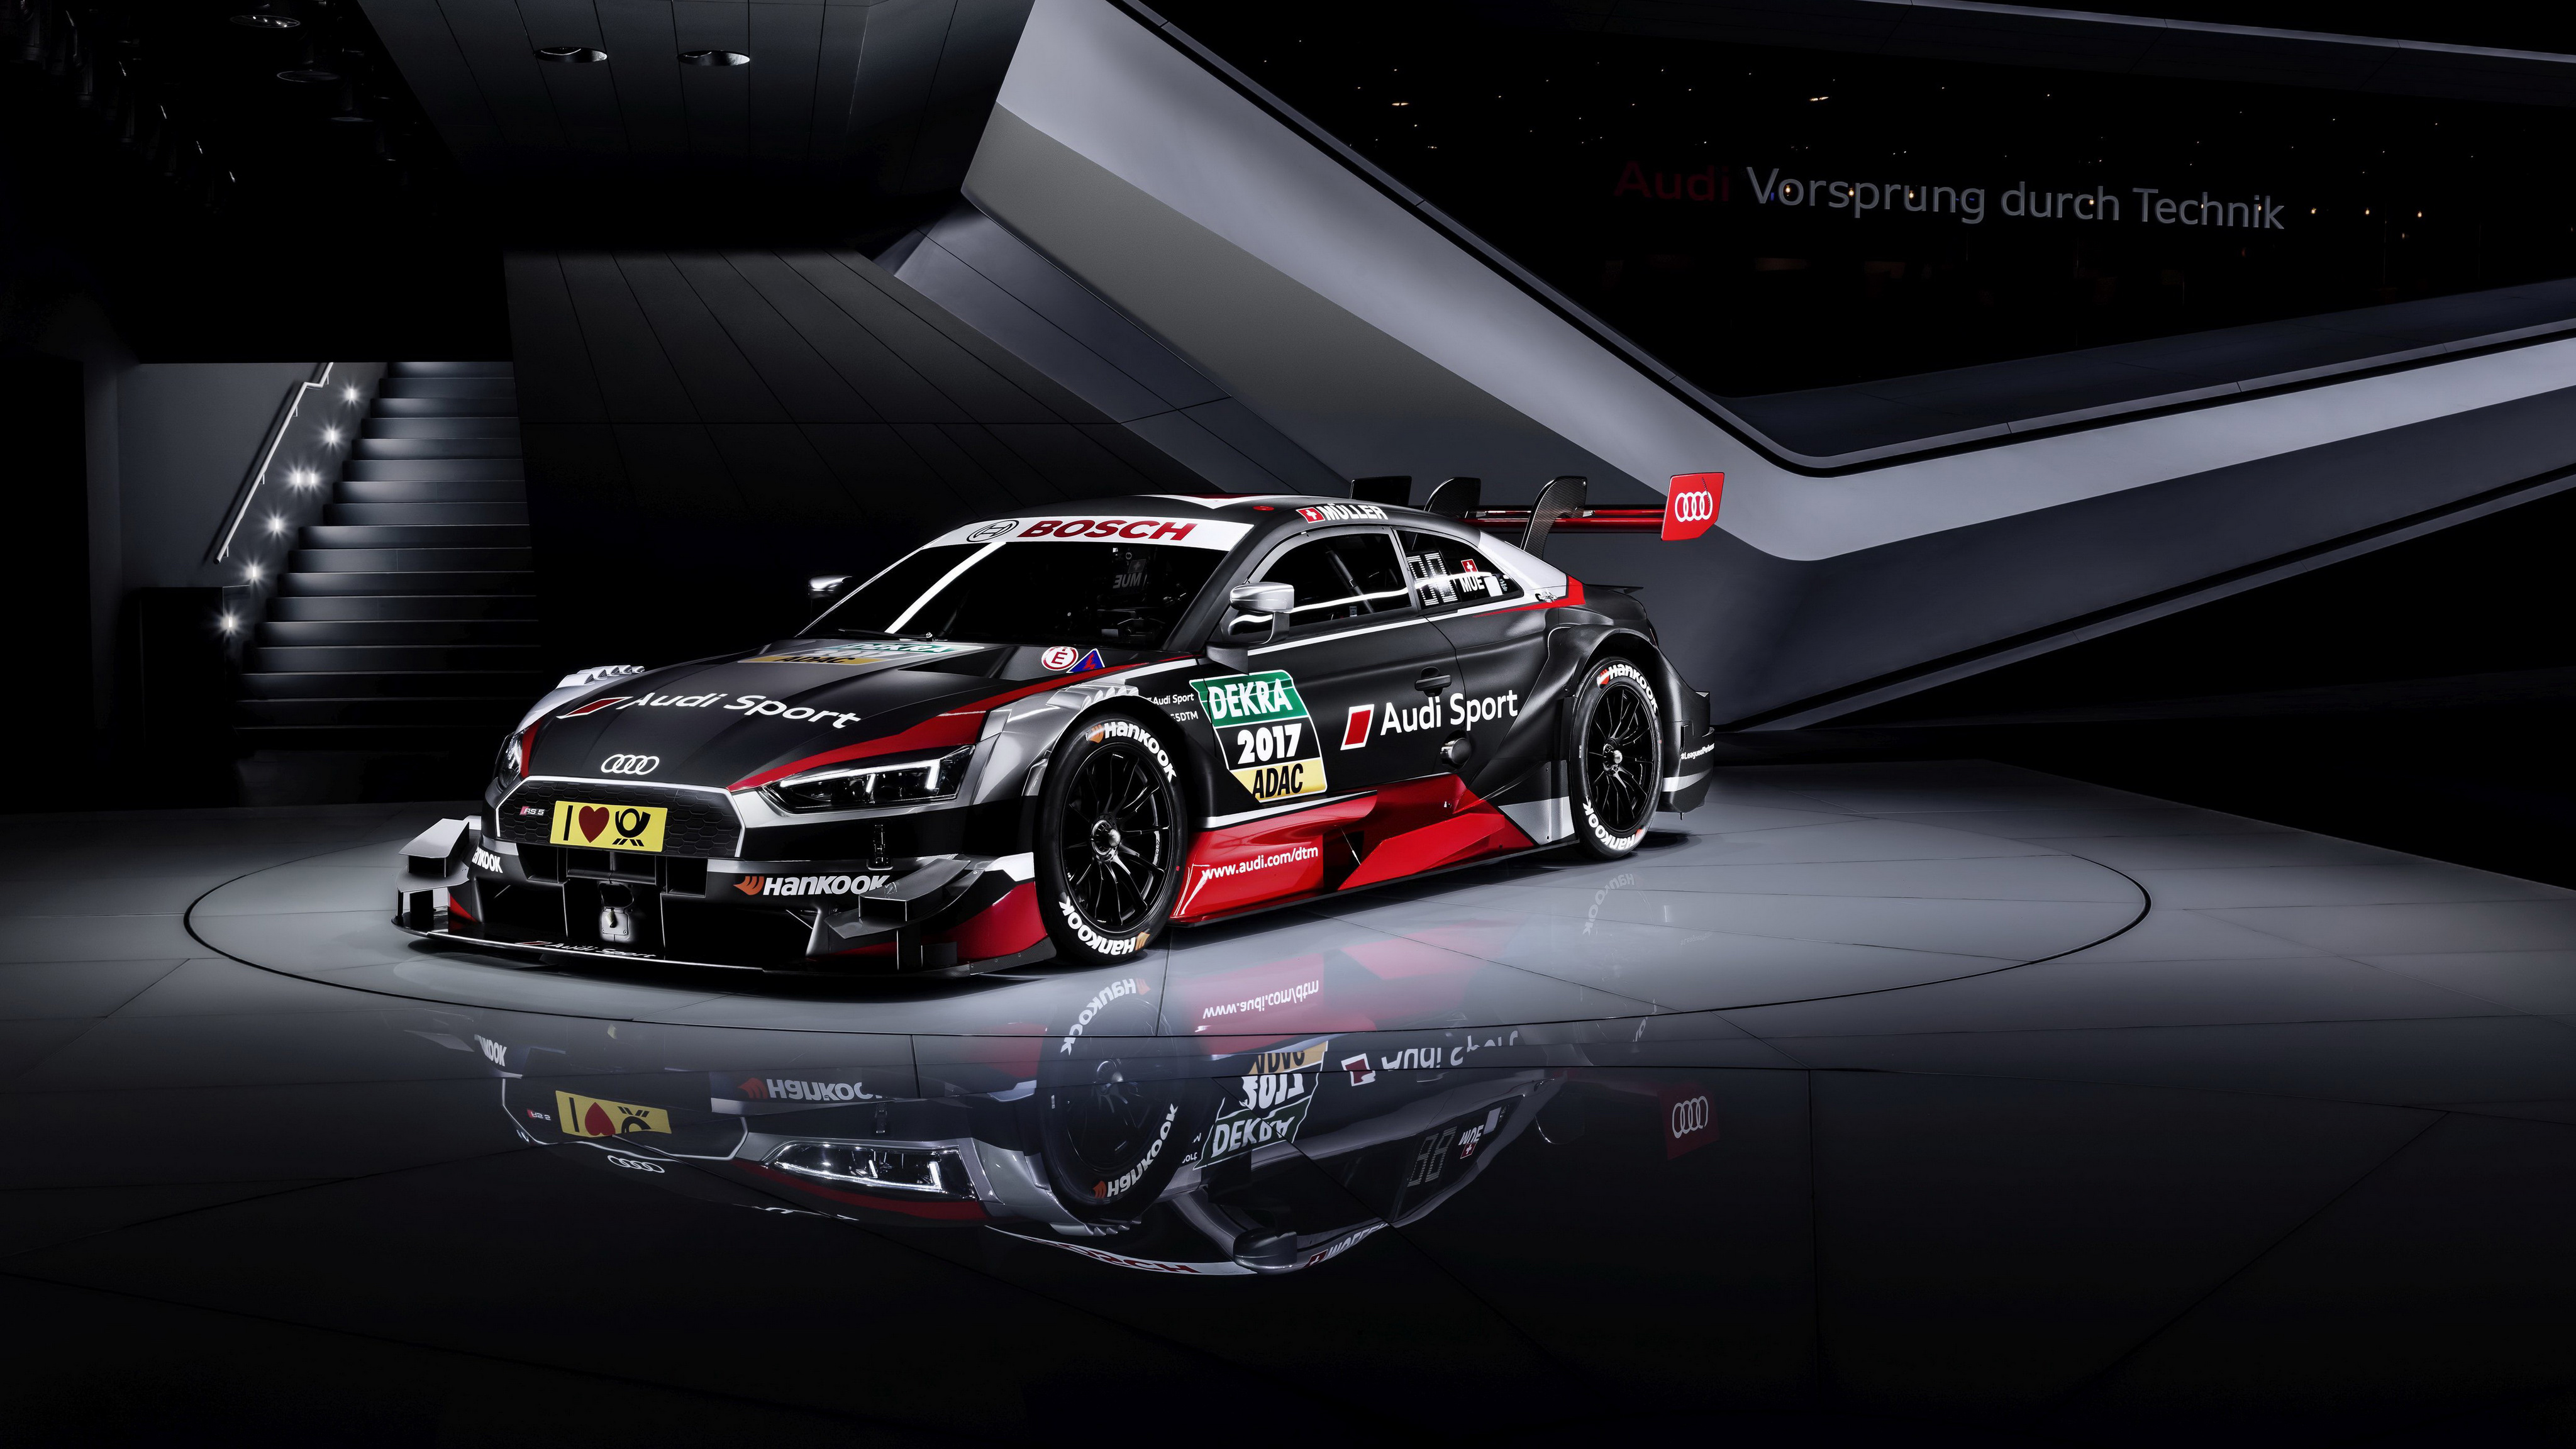 2018 Audi Rs 5 Coupe Dtm Wallpaper Hd Car Wallpapers Id 7646